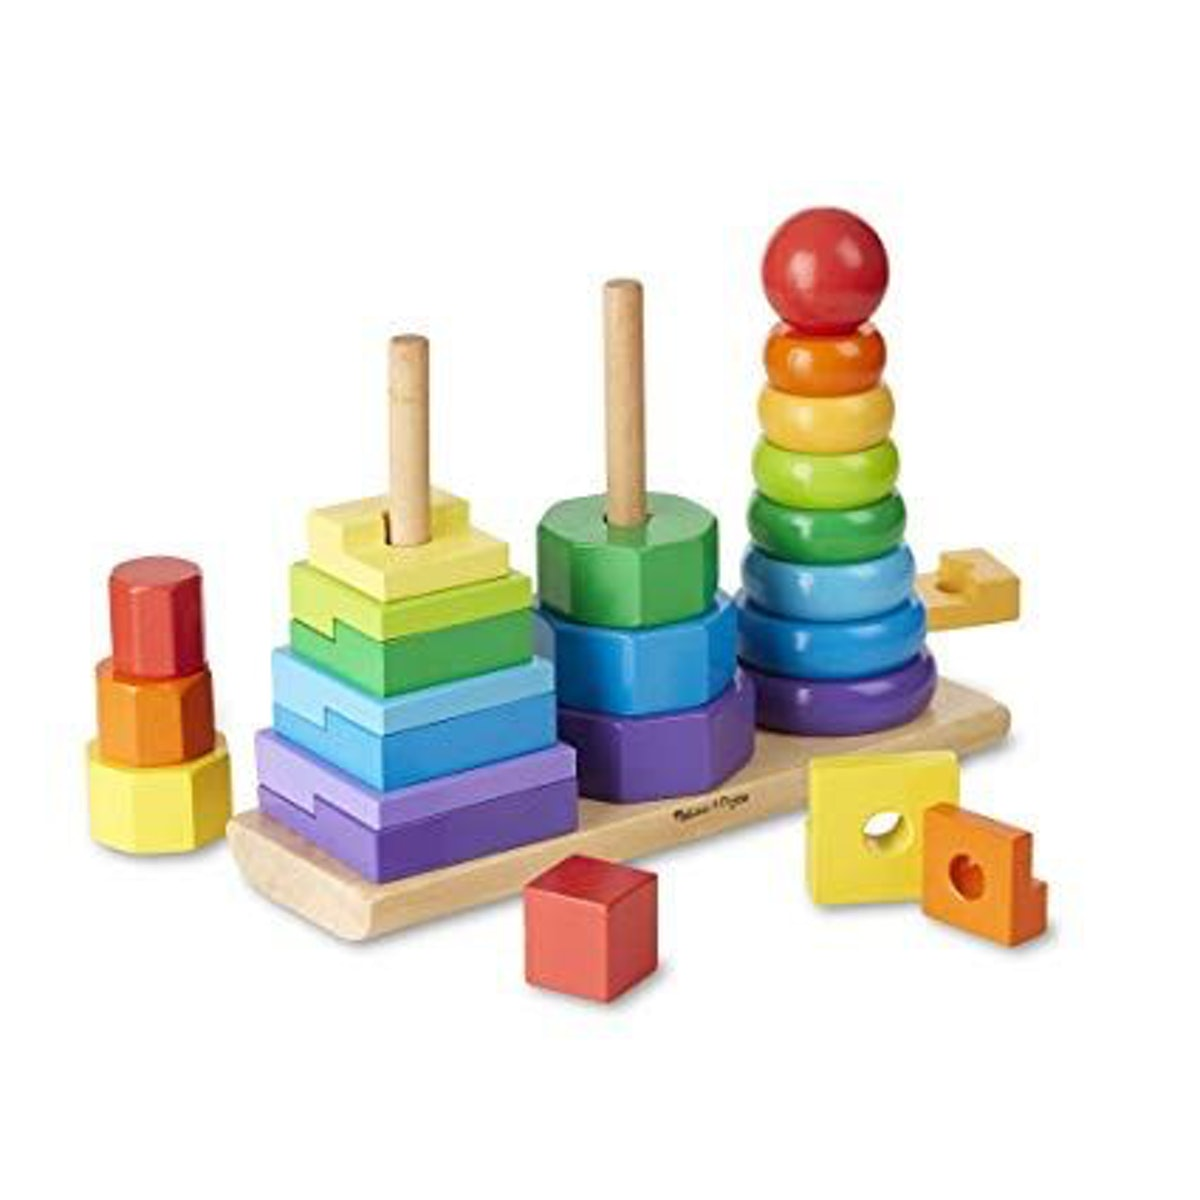 16 Toys Every Montessori Mom Has In Her Home